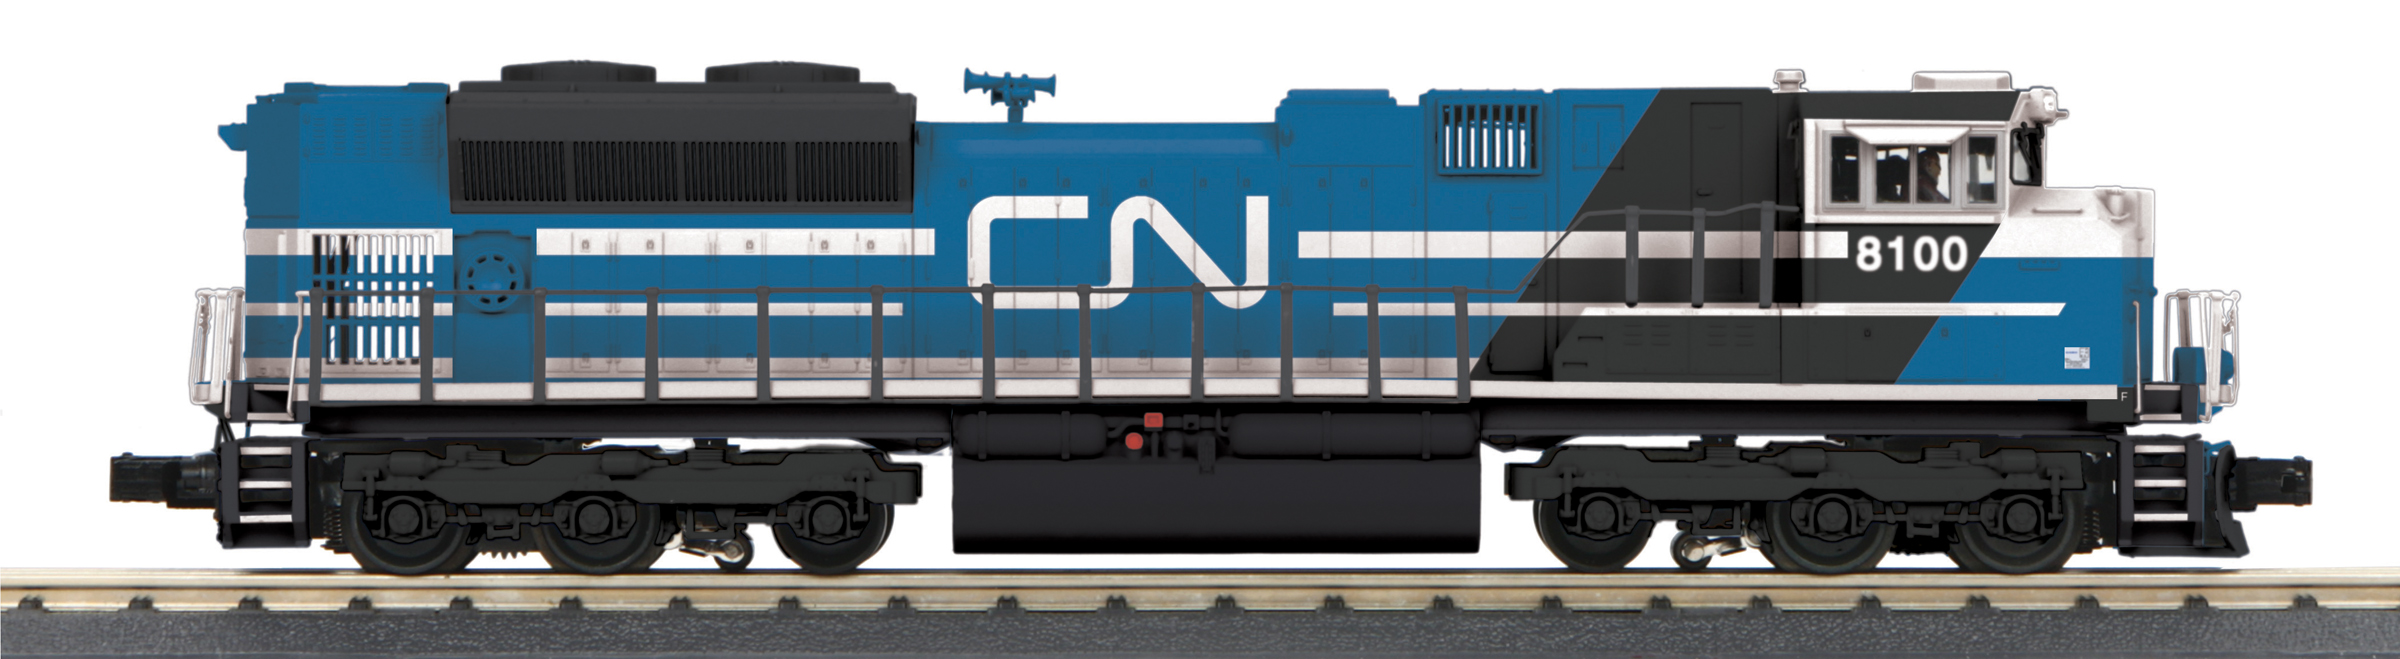 MTH 30-20513-1 EMD SD70ACe 3 Rail Proto Sound 3.0 Imperial Canadian National 8100